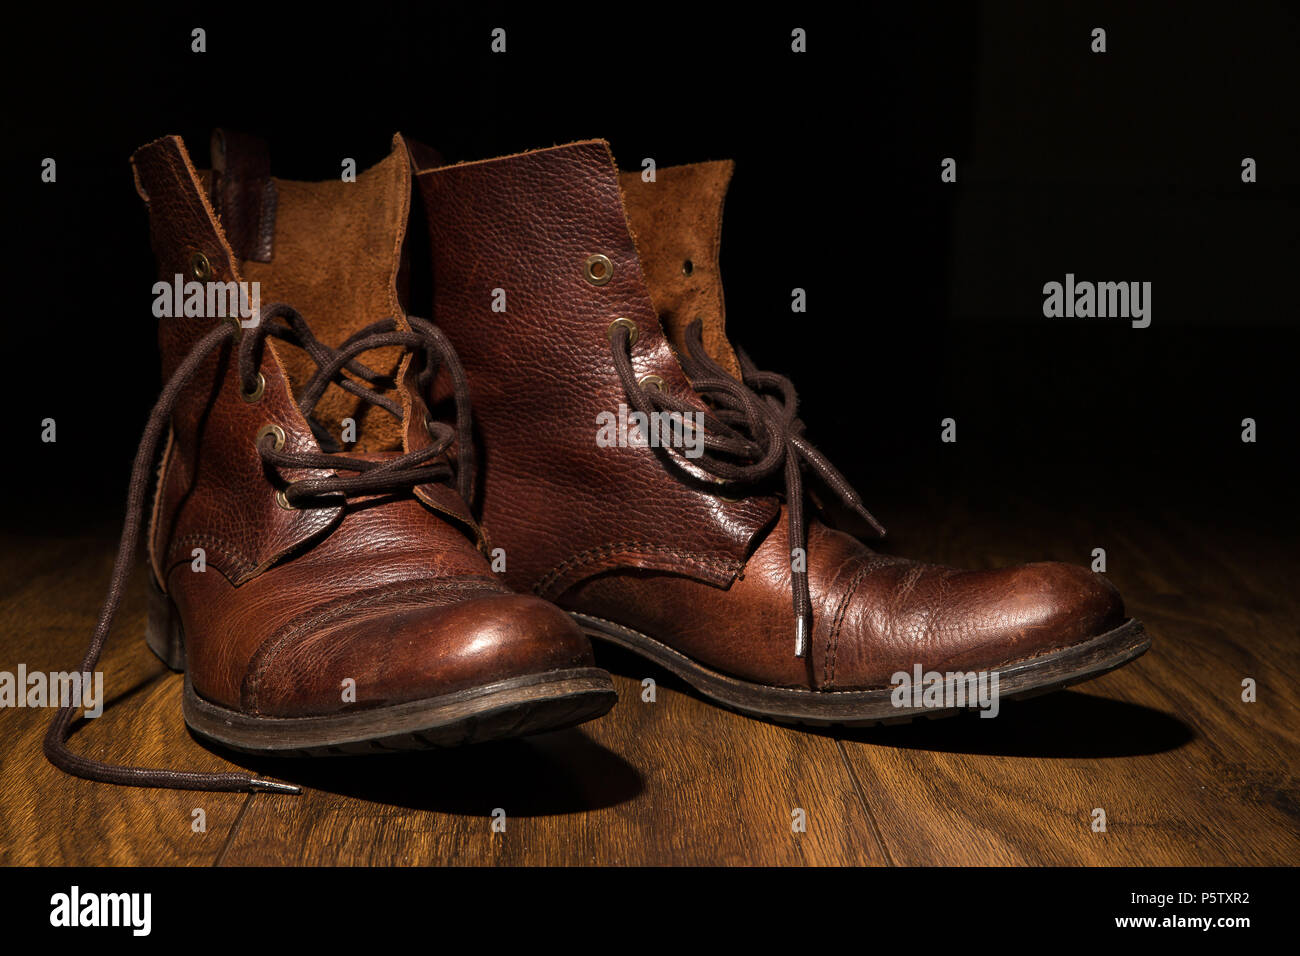 Arty close up of men's brown, leather ankle boots, laces undone, on wooden flooring with dark background. Low-key lighting used for artistic effect. - Stock Image